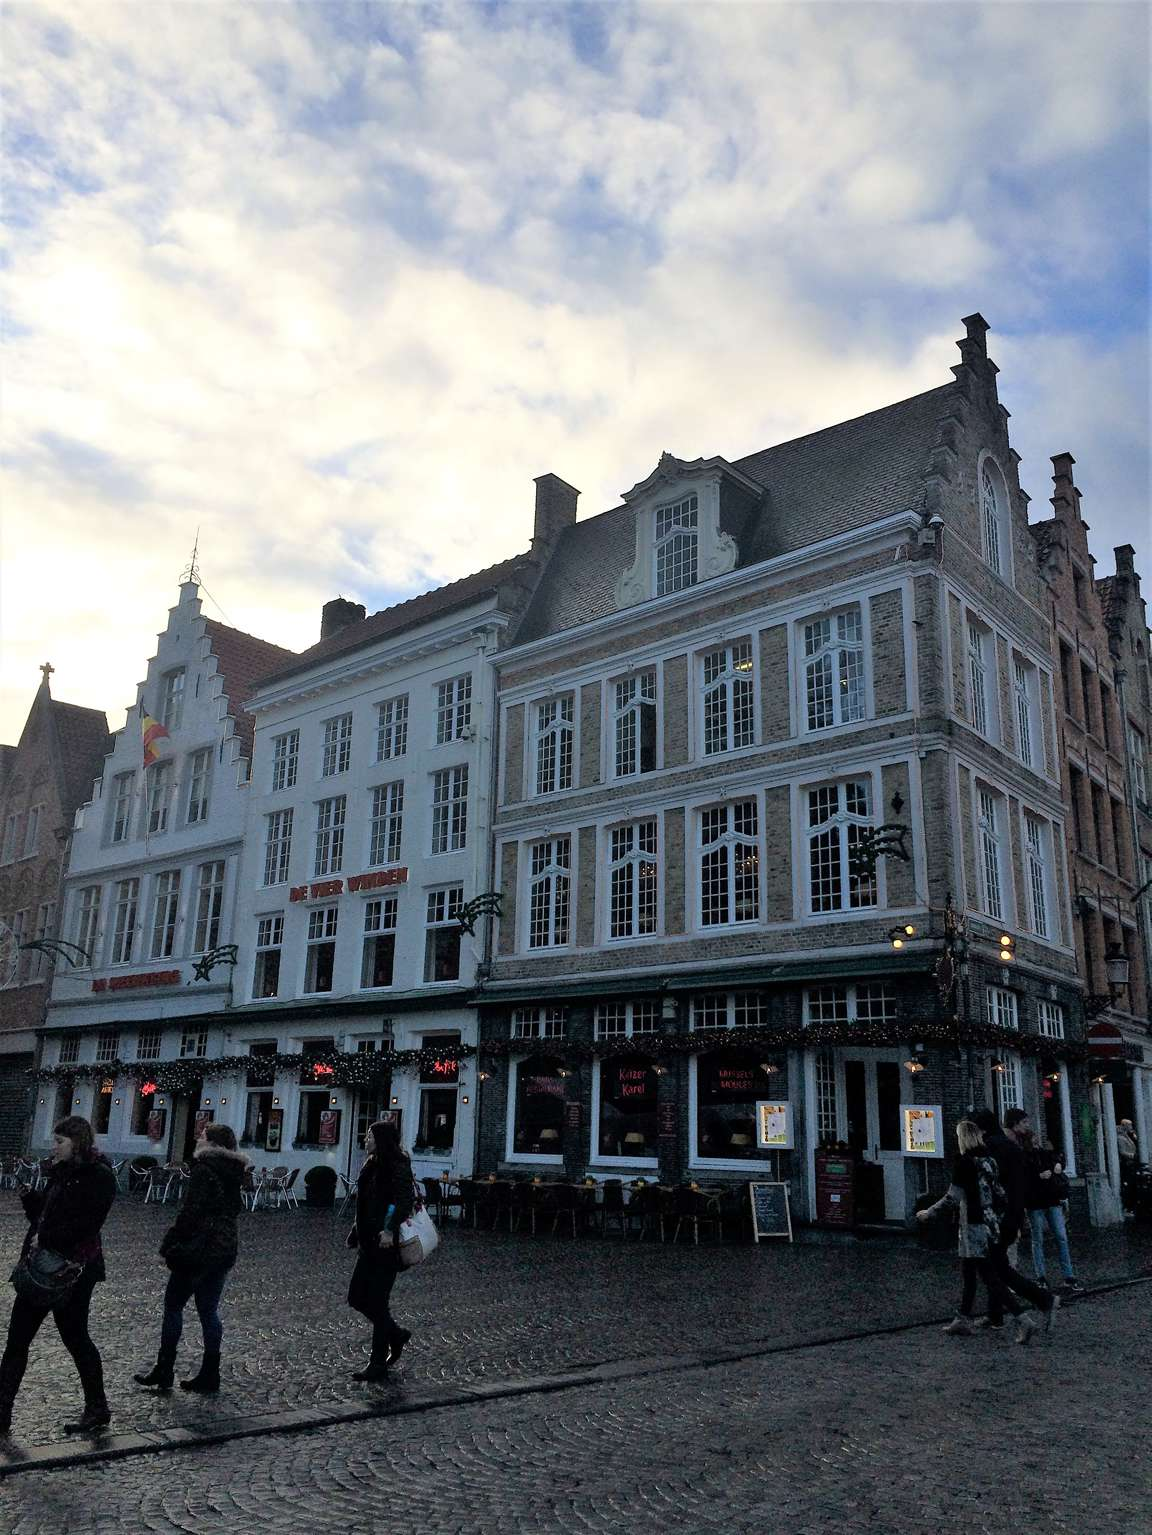 A picture of a street in Bruges, Belgium with gabled buildings and cobblestone streets.